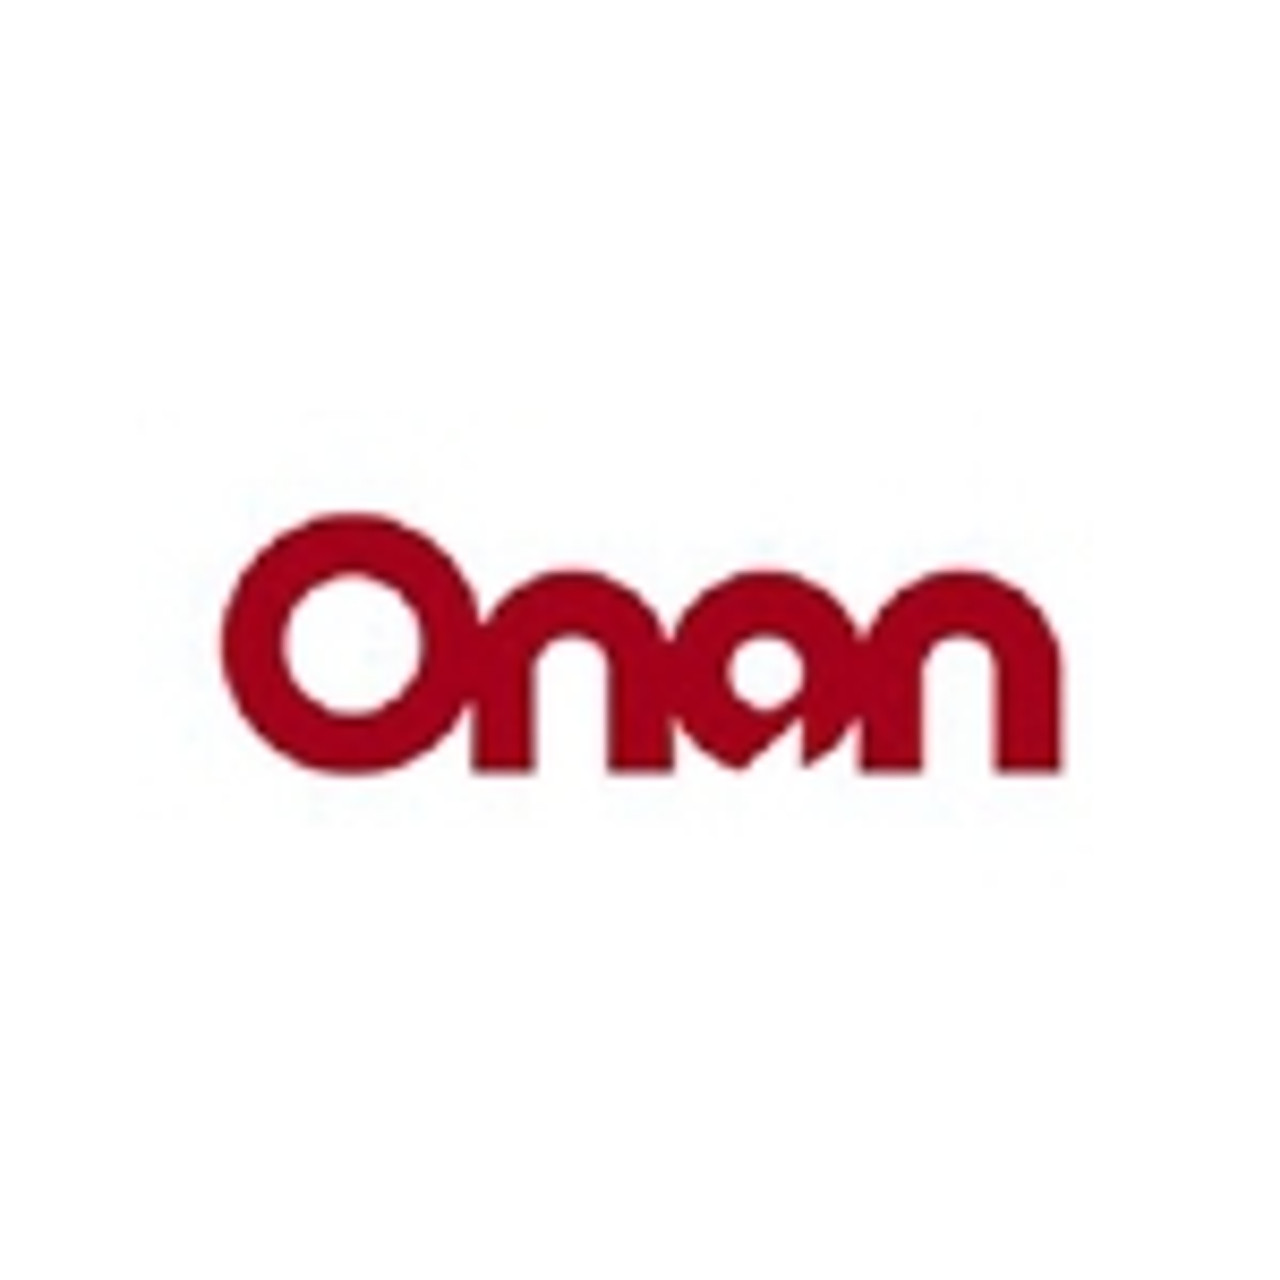 Onan Engines